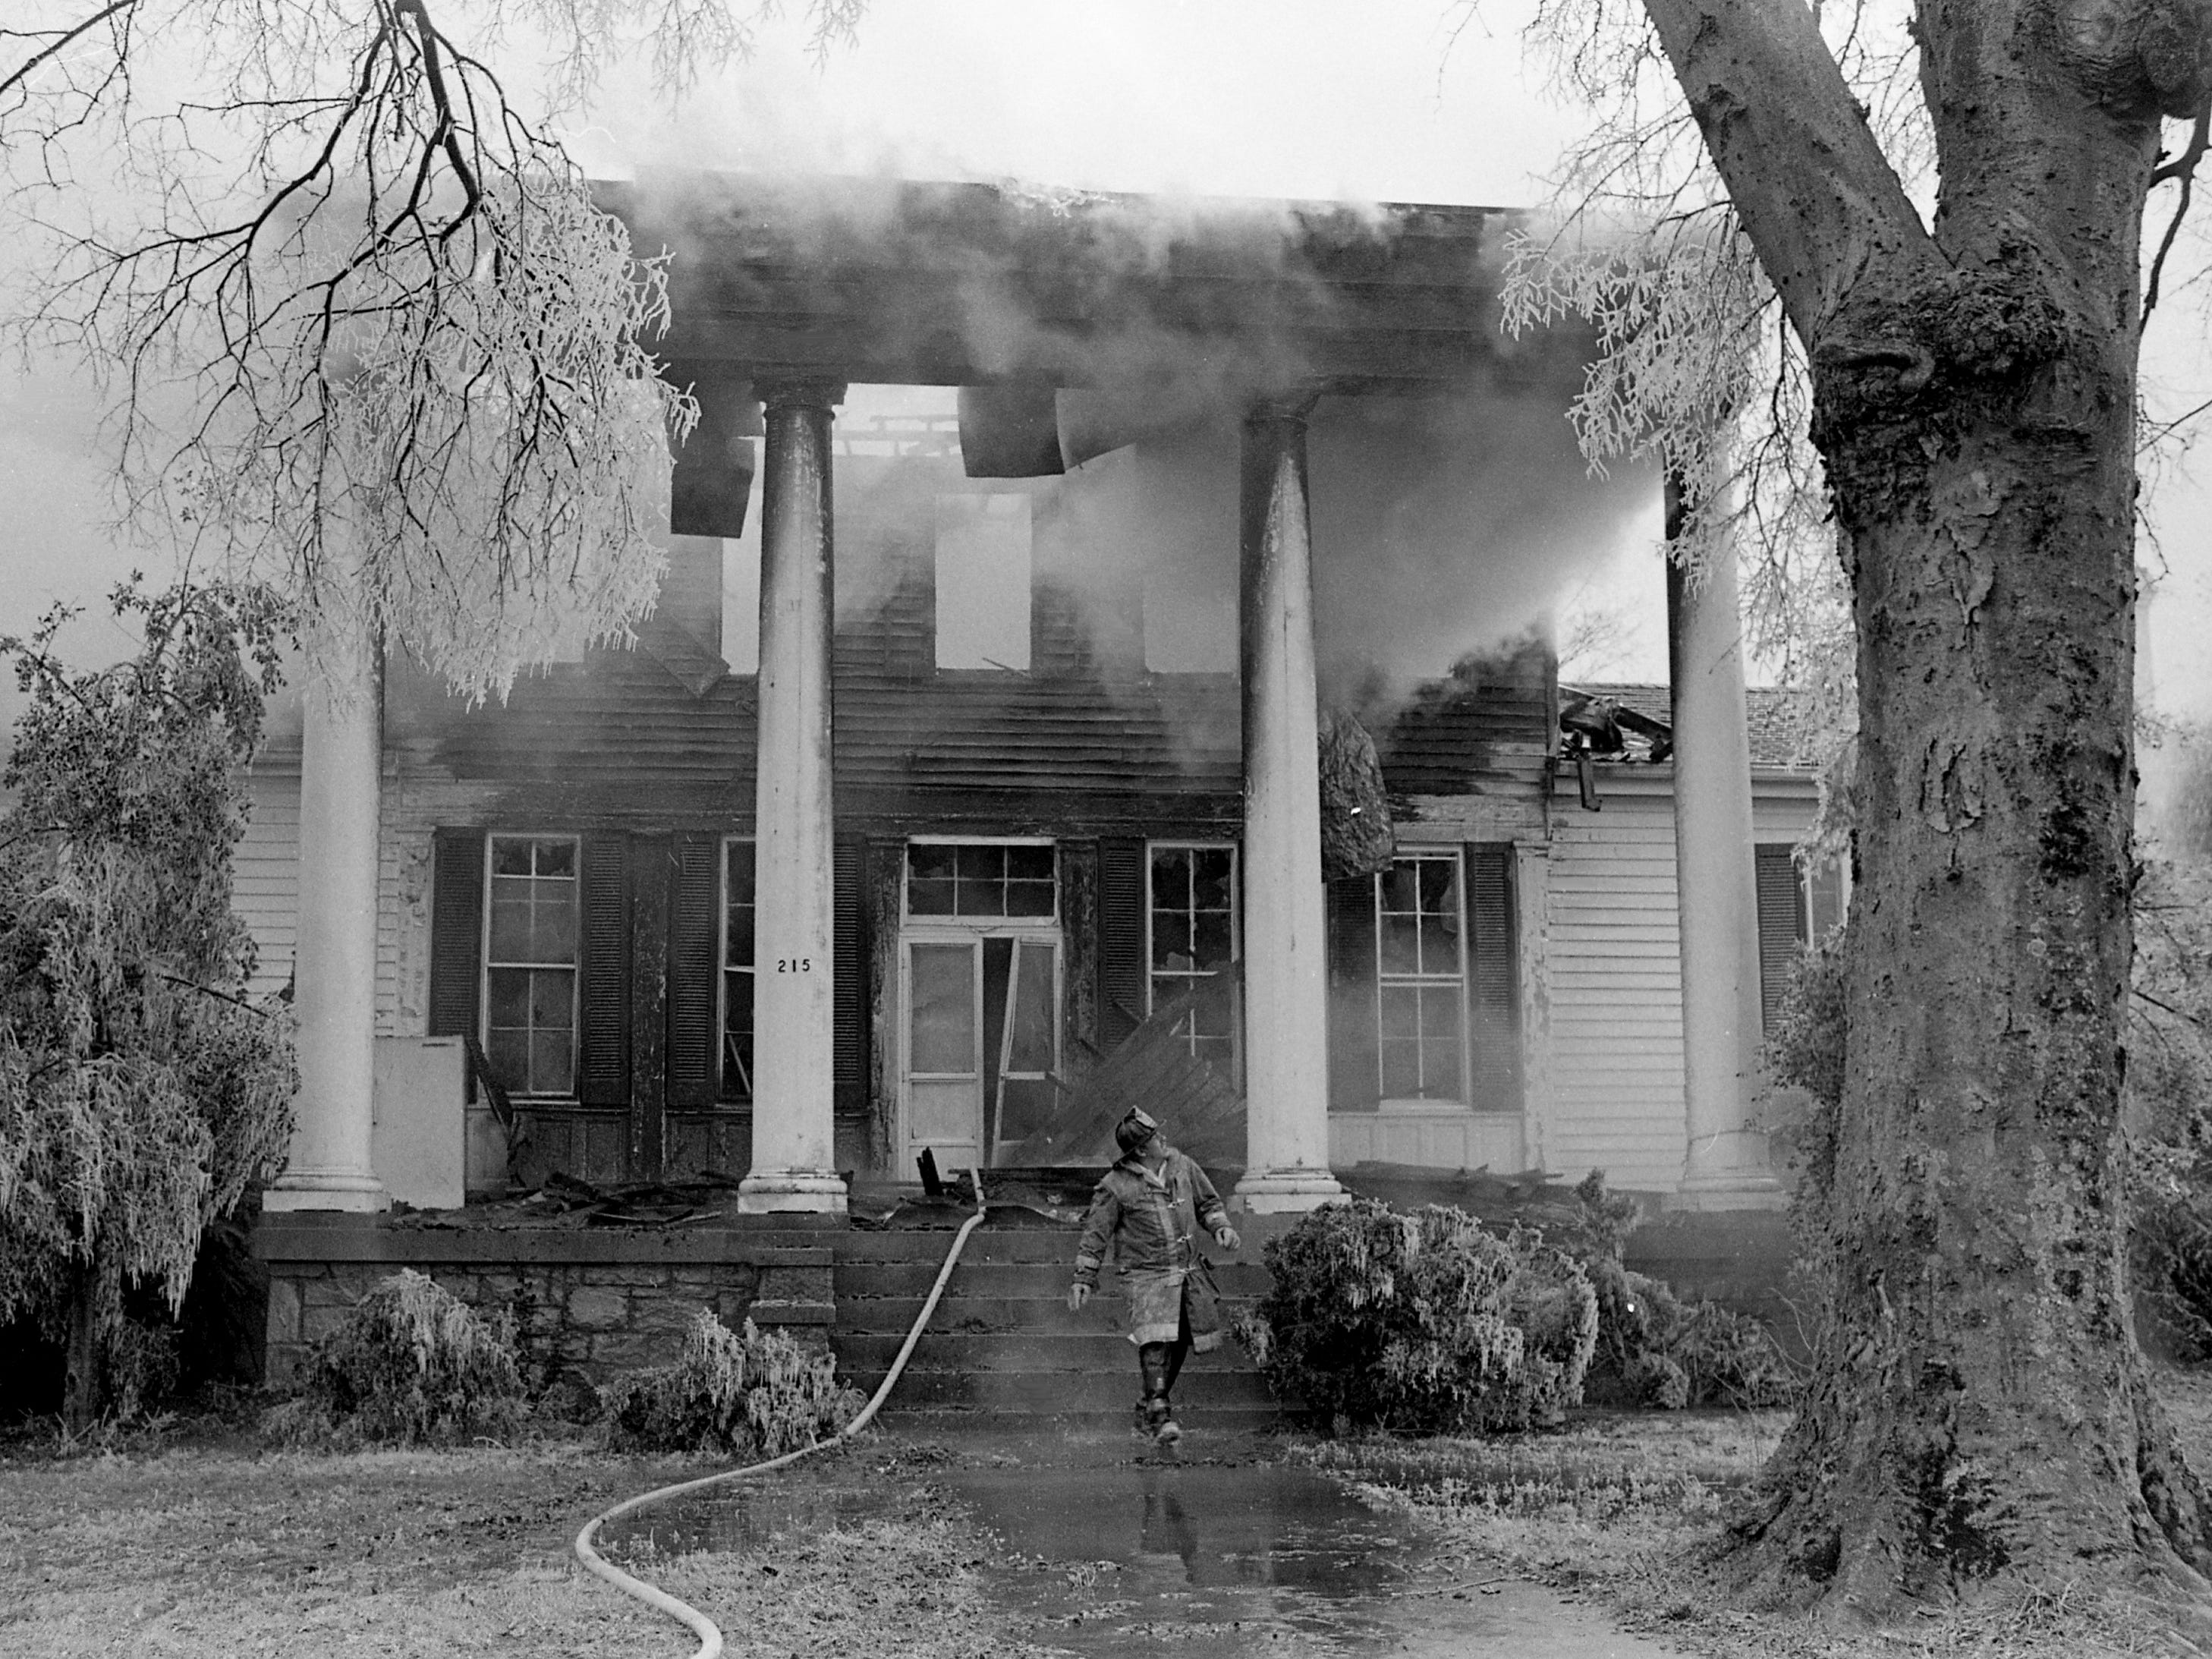 Firefighters are putting out a blaze that heavily damaged the upper floors of a vacant house at 215 Blanton Ave. on Jan. 2, 1979. The house owners, Mr. and Mrs. George T. Sain, said the 36-room house had been vacant for nine years and was supervised by a caretaker who was absent when the fire broke out.